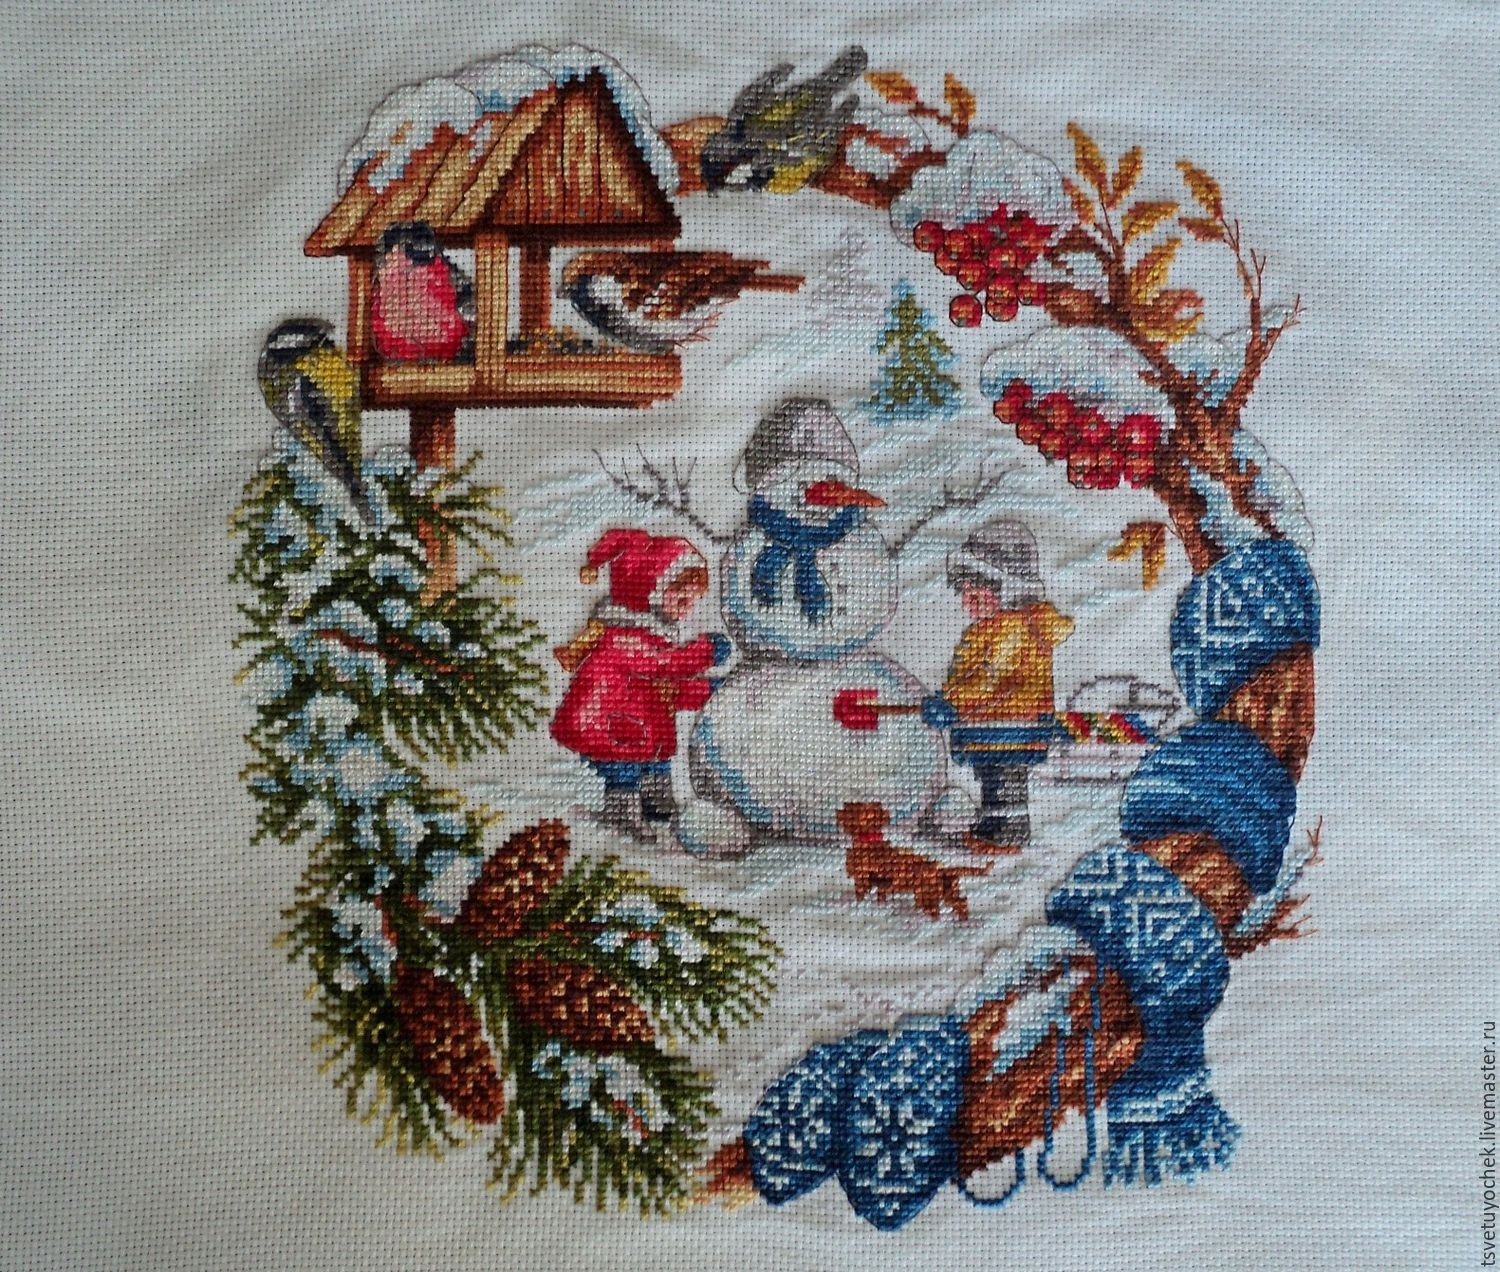 Winter entertainments the cross stitched picture, Pictures, Moscow,  Фото №1